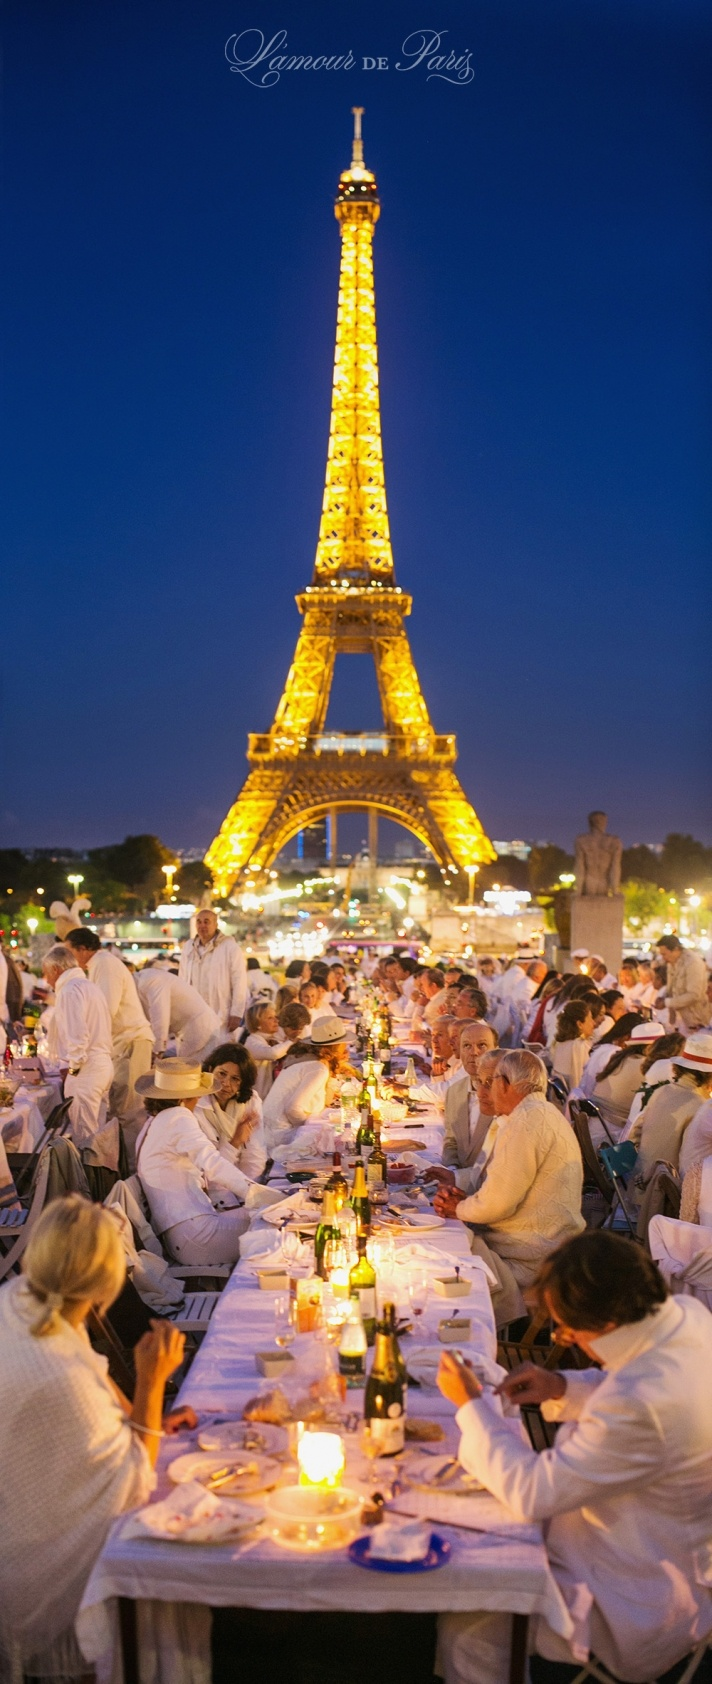 Diner en Blanc, a top secret invitiation-only flash mob in Paris, France where 11,000 people dressed entirely in white clothes spontaneously set up tables and chairs in front of historic landmarks one night a year. Photographed by Paris wedding and portrait photographer Stacy Reeves